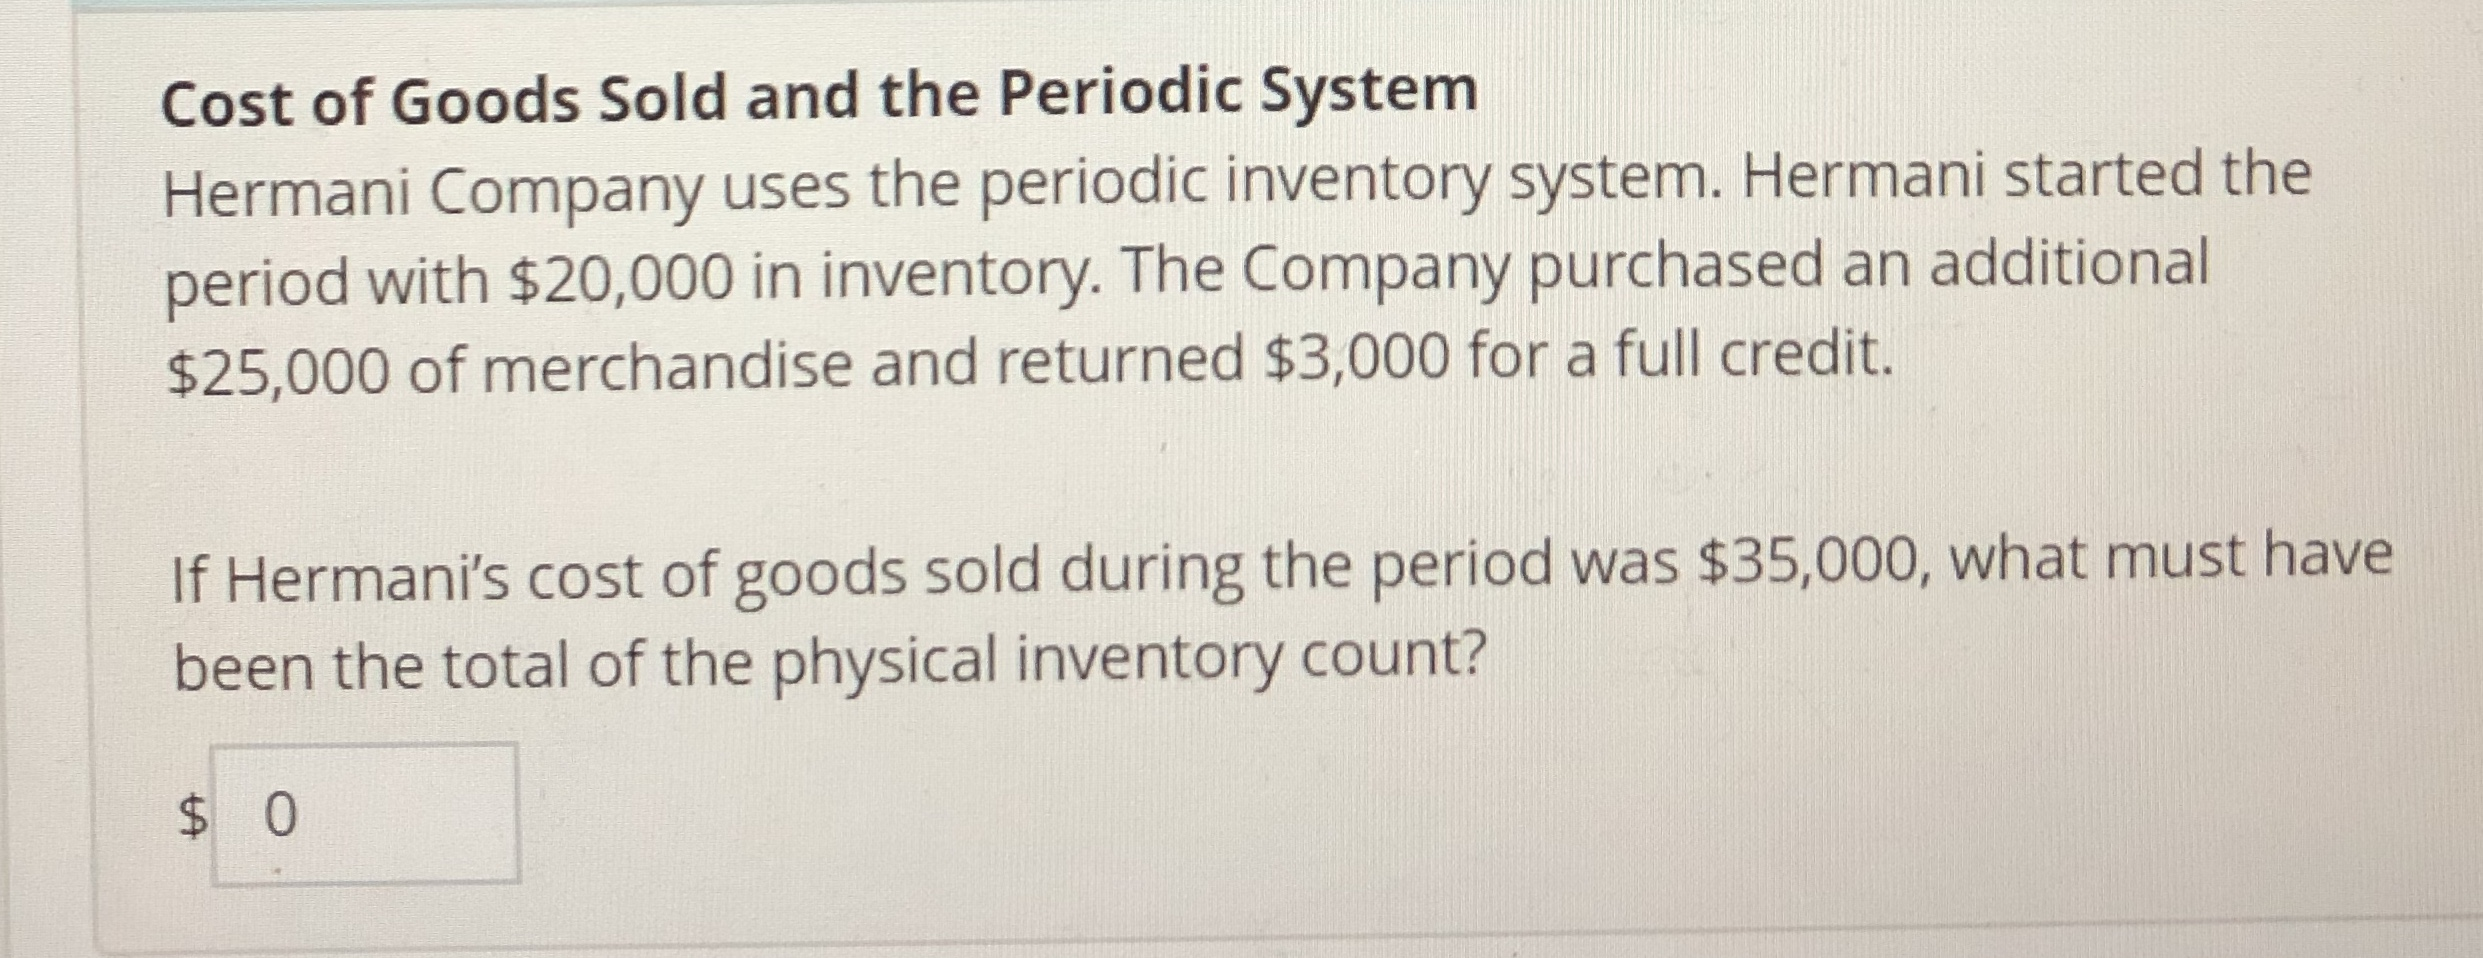 Cost of Goods Sold and the Periodic System Hermani Company uses the periodic inventory system. Hermani started the period with $20,000 in inventory. The Company purchased an additional $25,000 of merchandise and returned $3,000 for a full credit. If Hermani's cost of goods sold during the period was $35,000, what must have been the total of the physical inventory count?